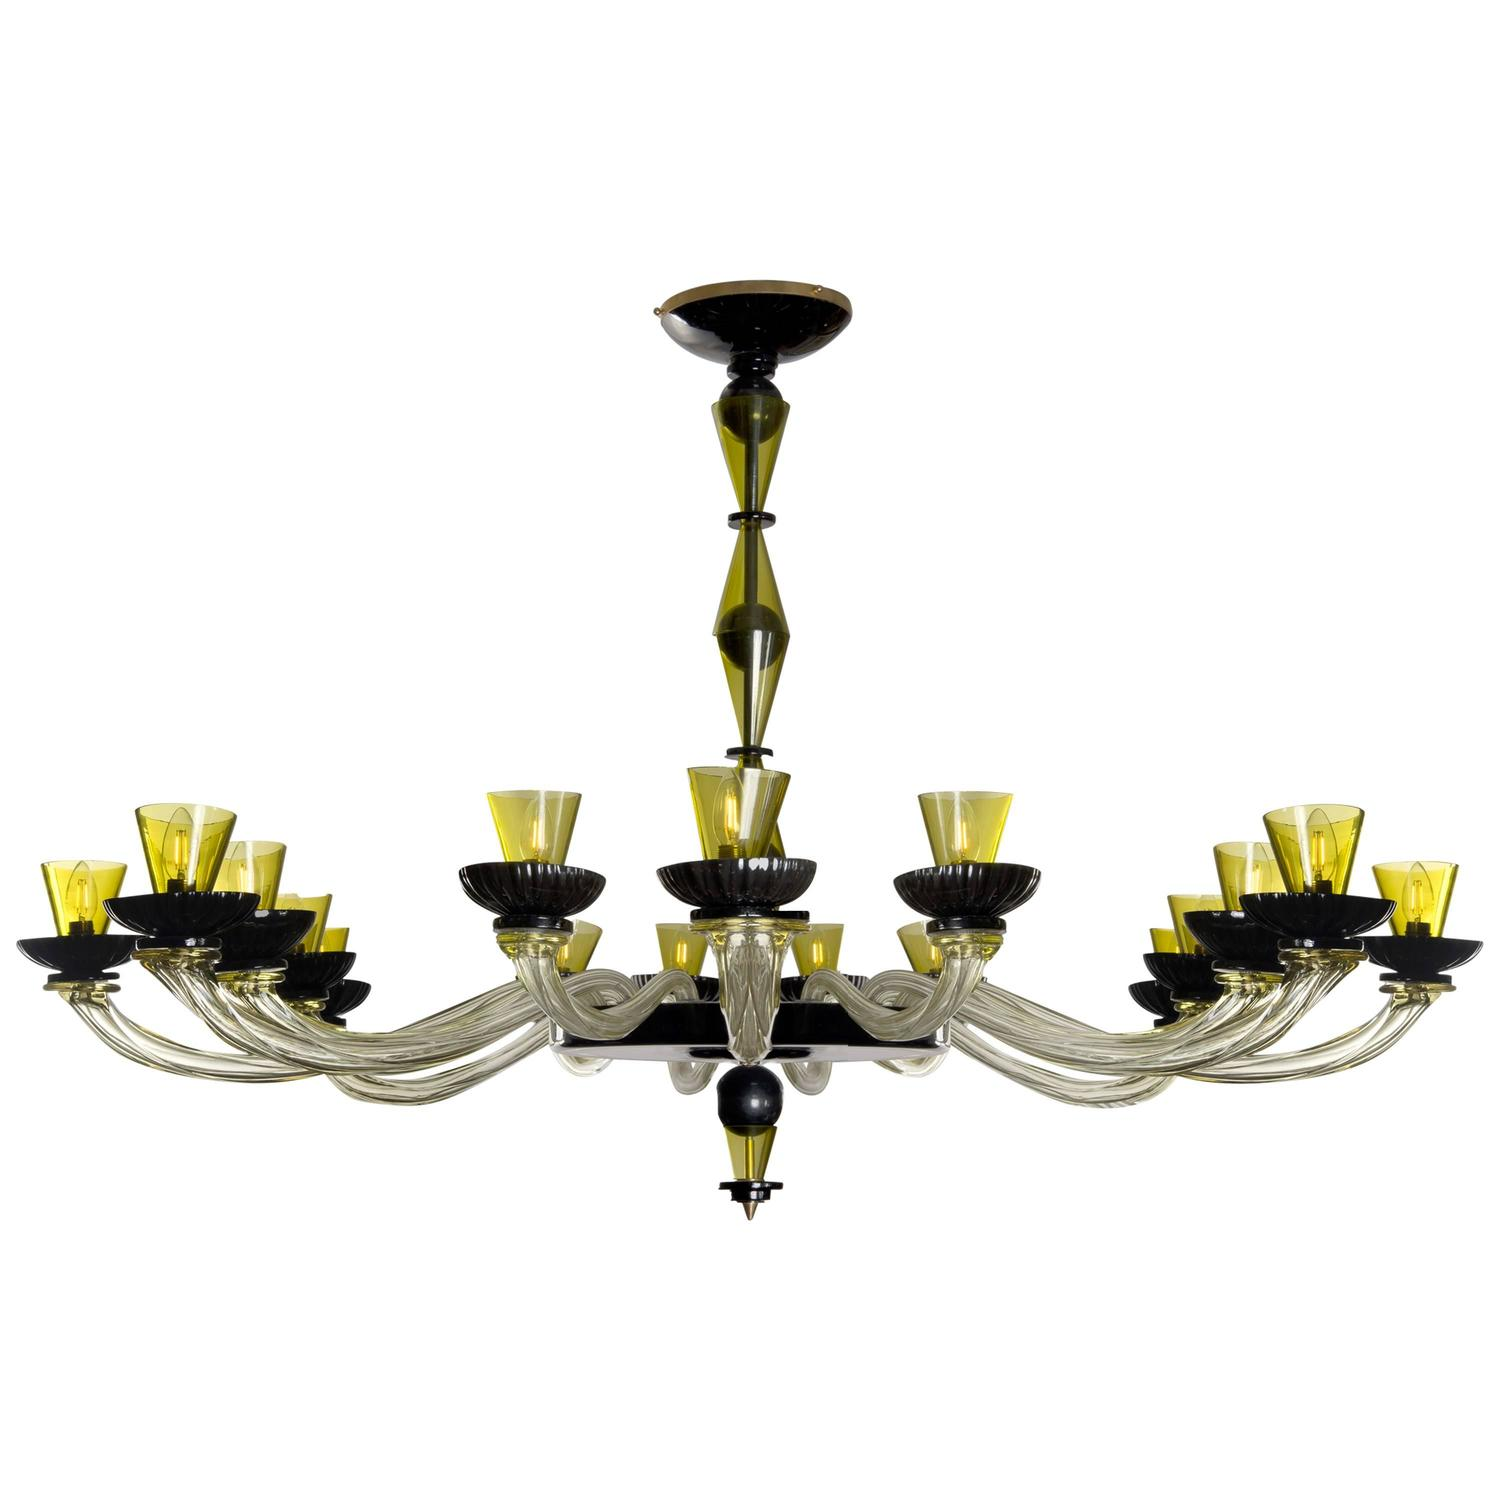 Murano Glass Chandelier Large: Large Cenedese Murano Glass Chandelier, Circa 1980 For